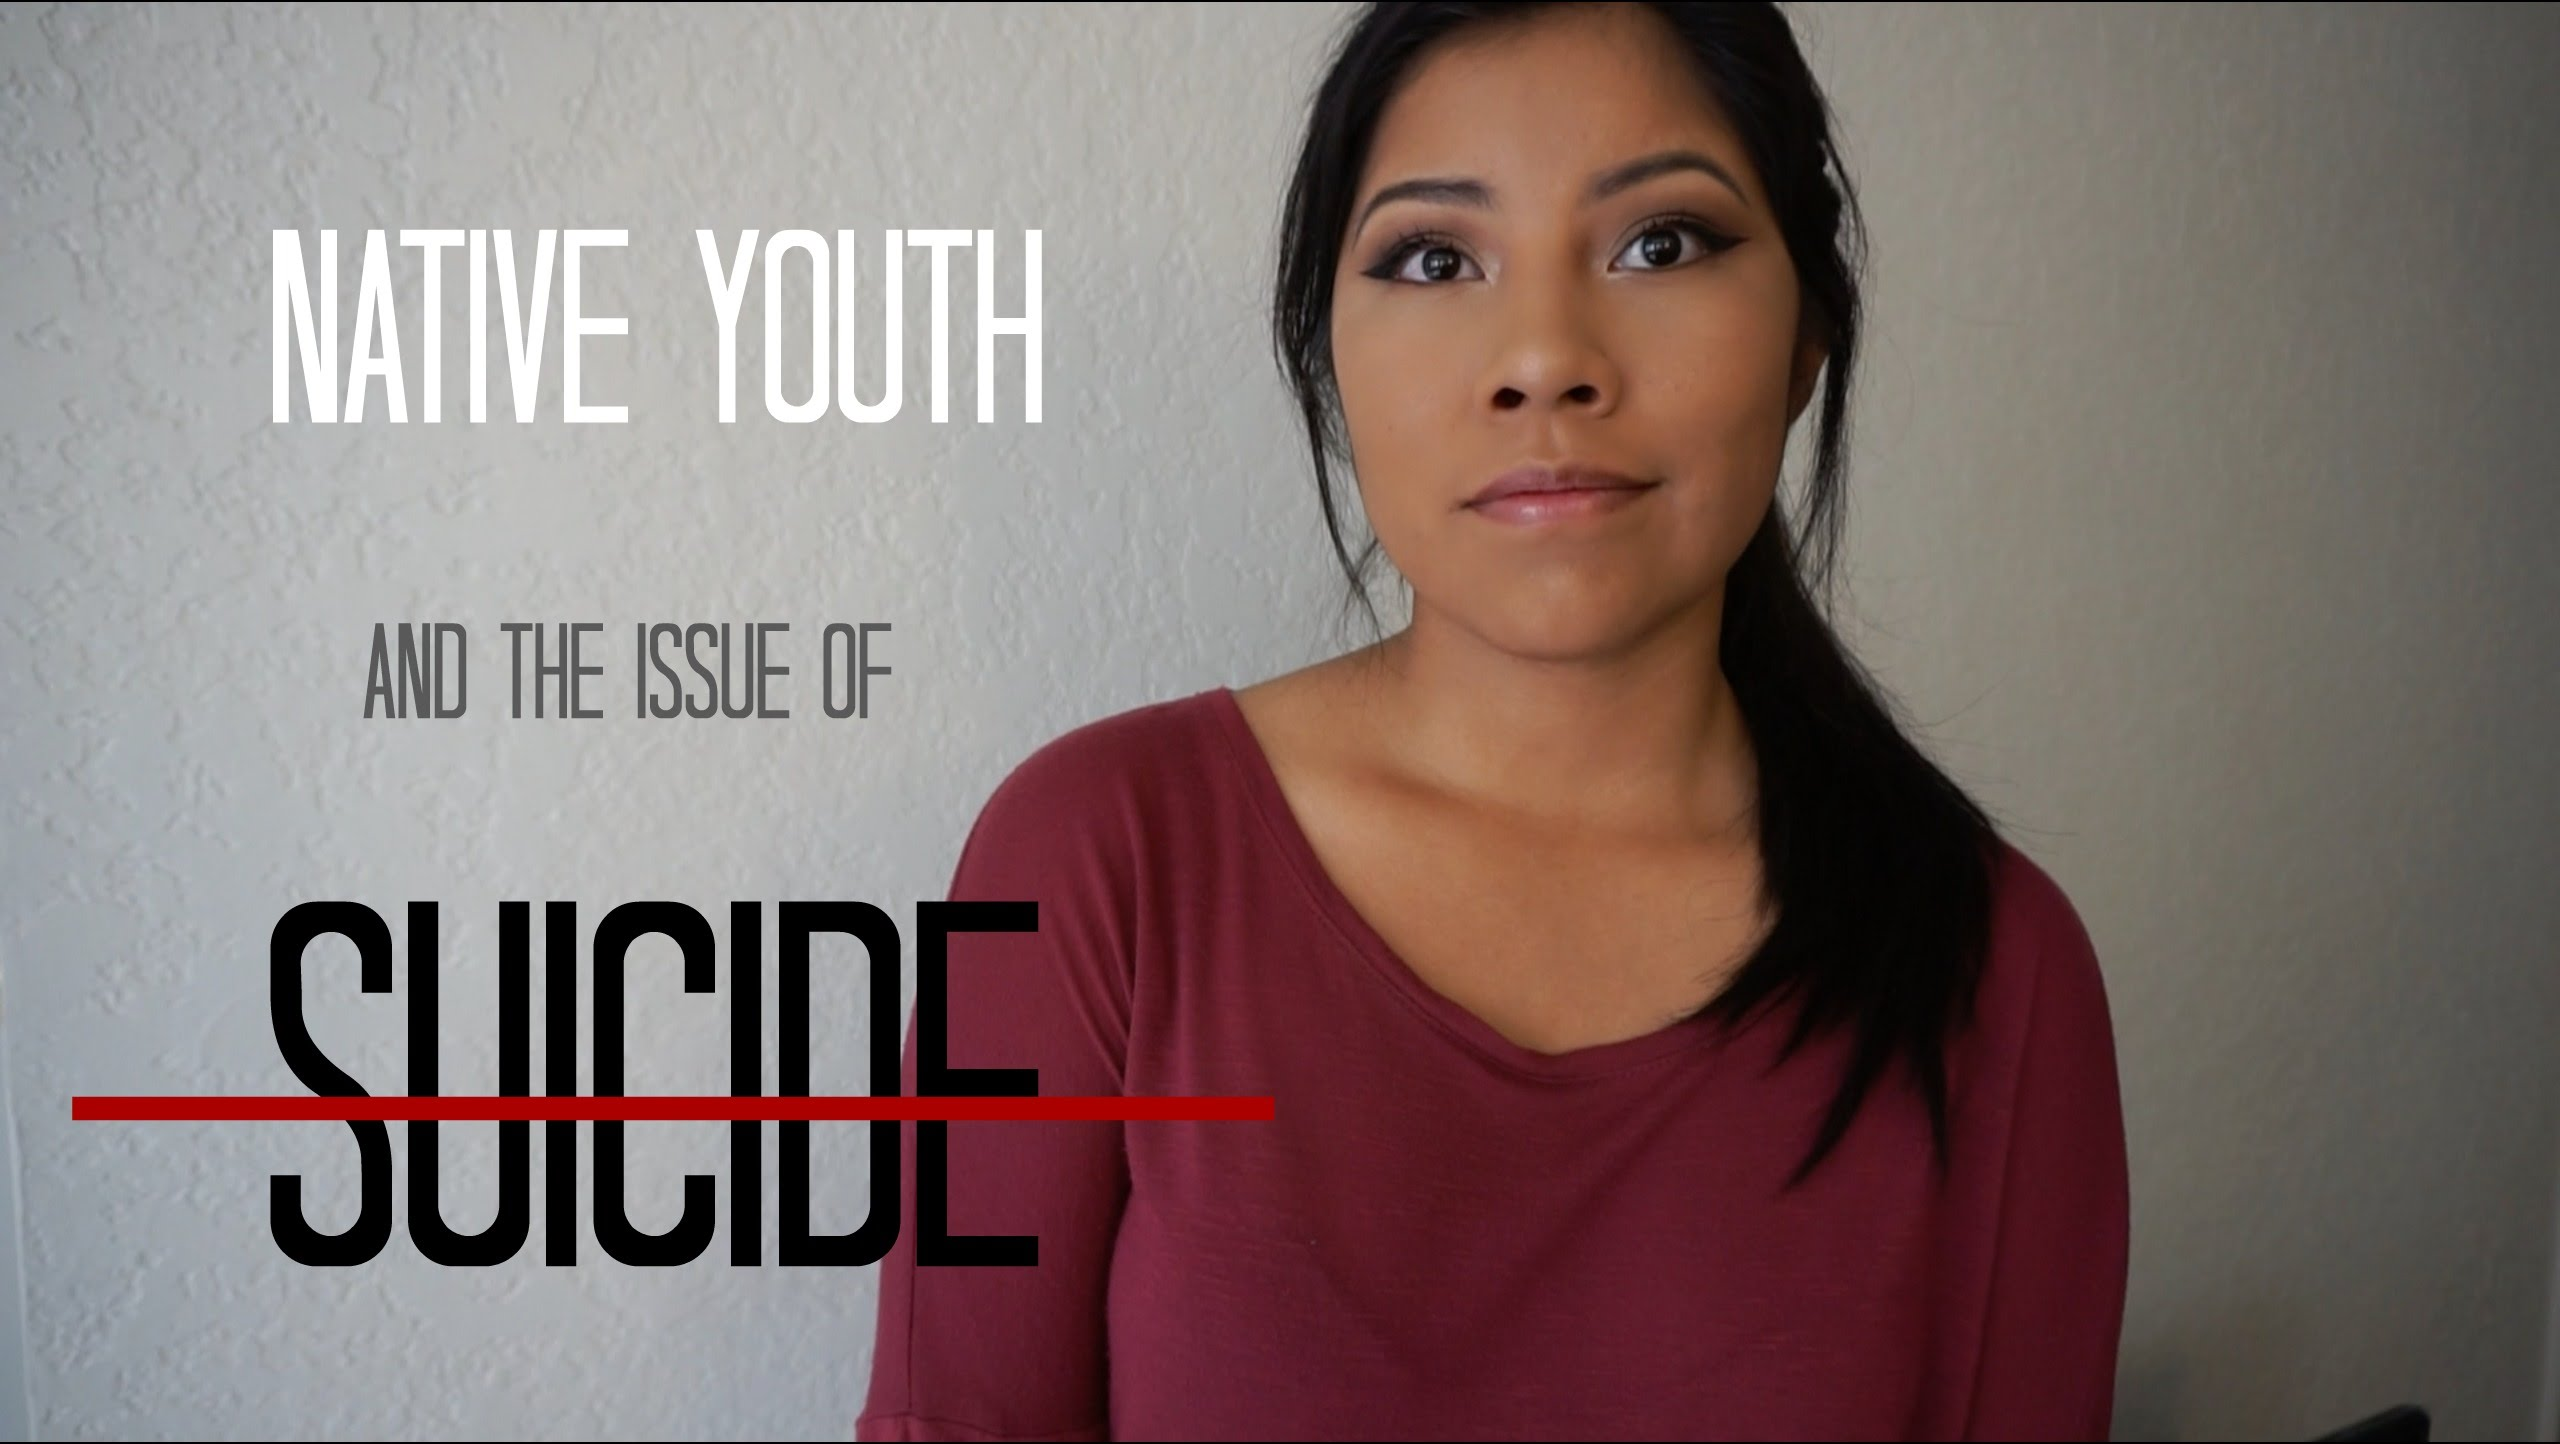 youth suicide in native americans Context american indians and alaska natives have the highest suicide rates of  all ethnic groups in the united states, and suicide is the second leading cause of .